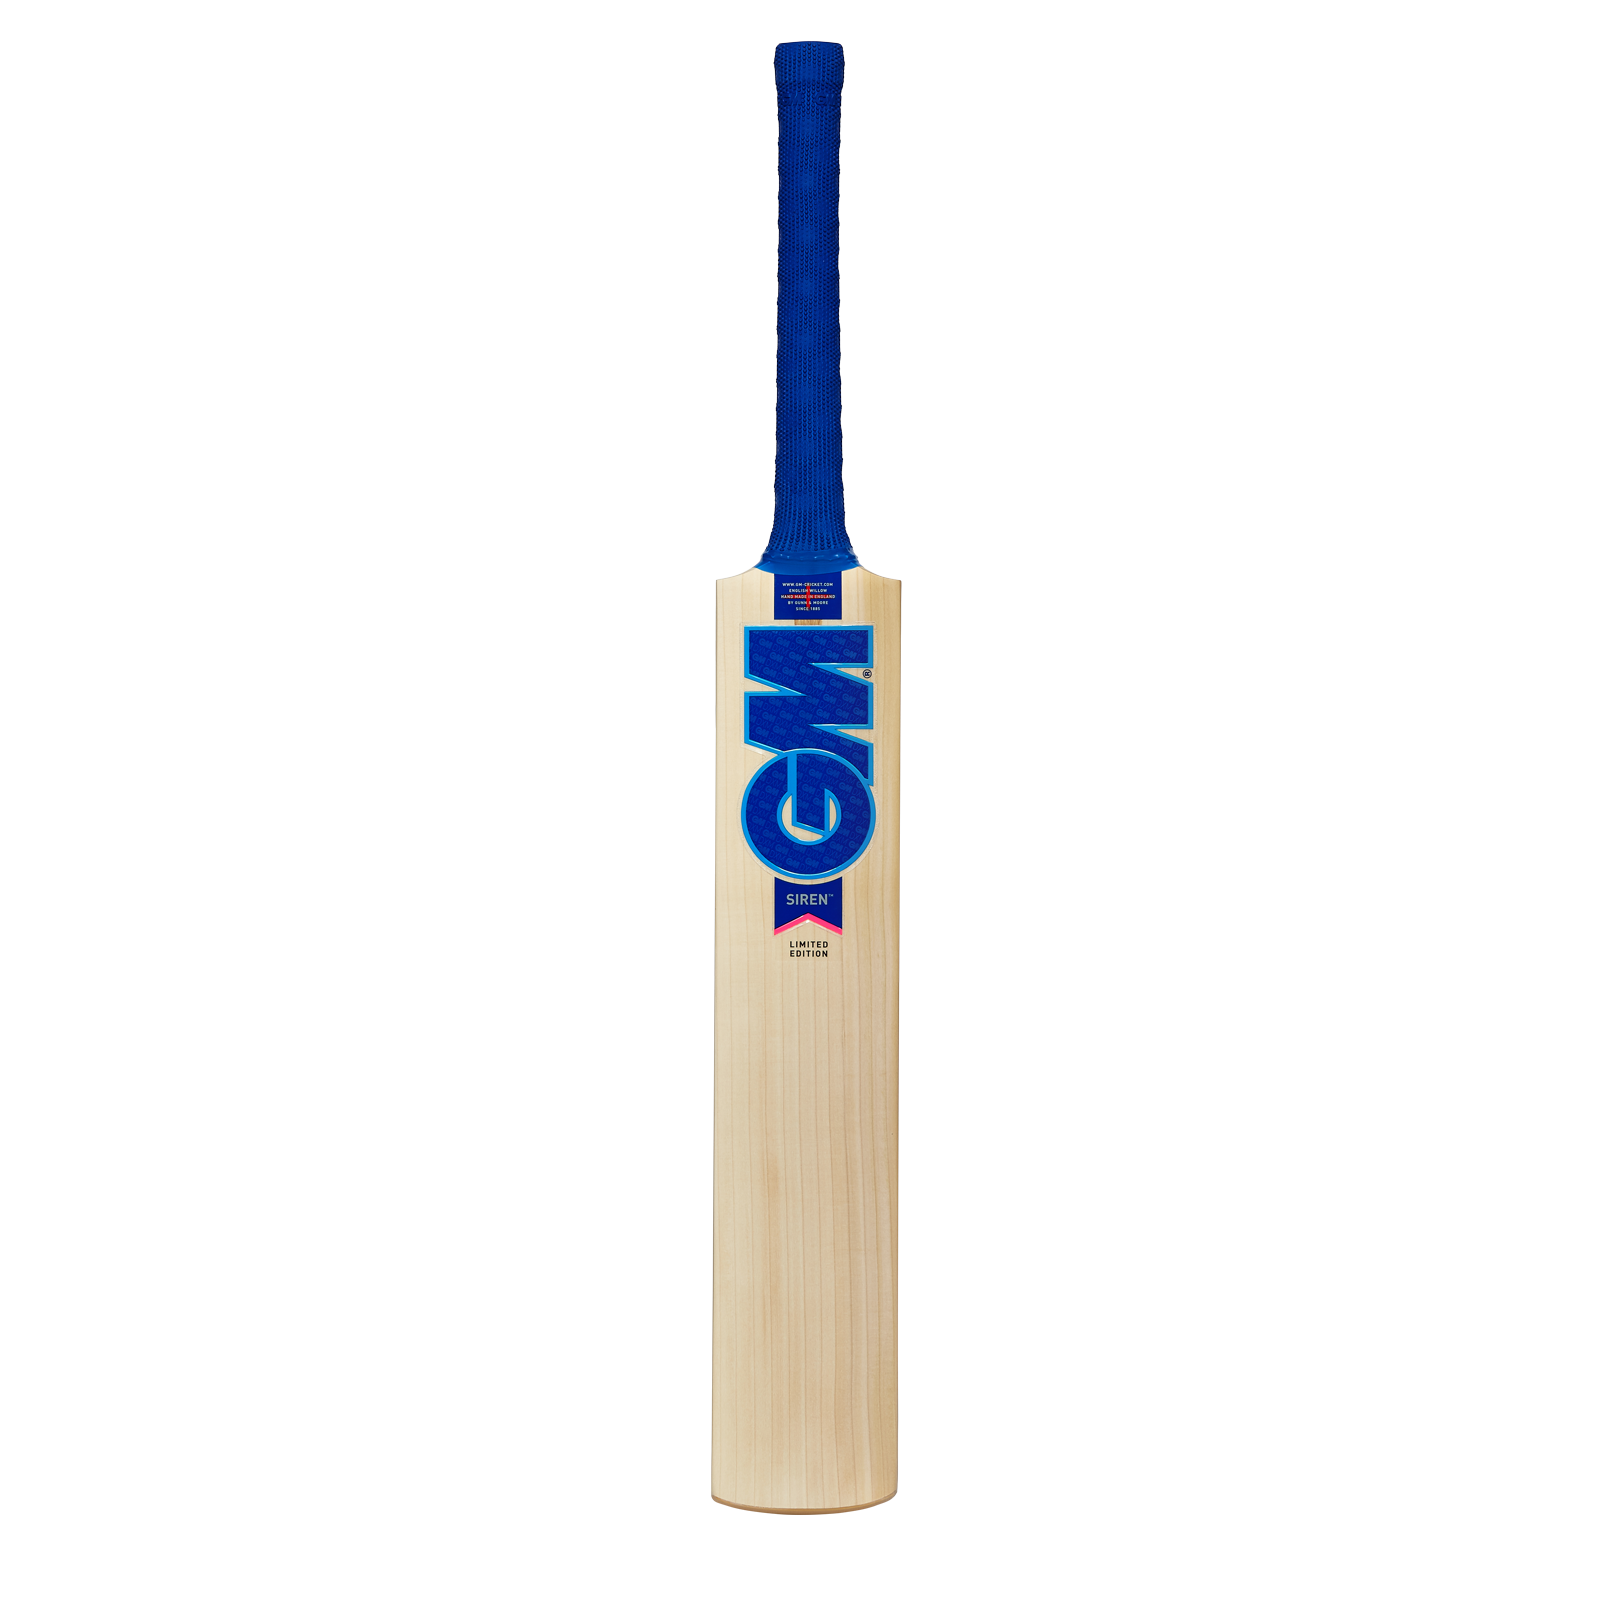 2020 Gunn and Moore Siren DXM 808 Junior Cricket Bat